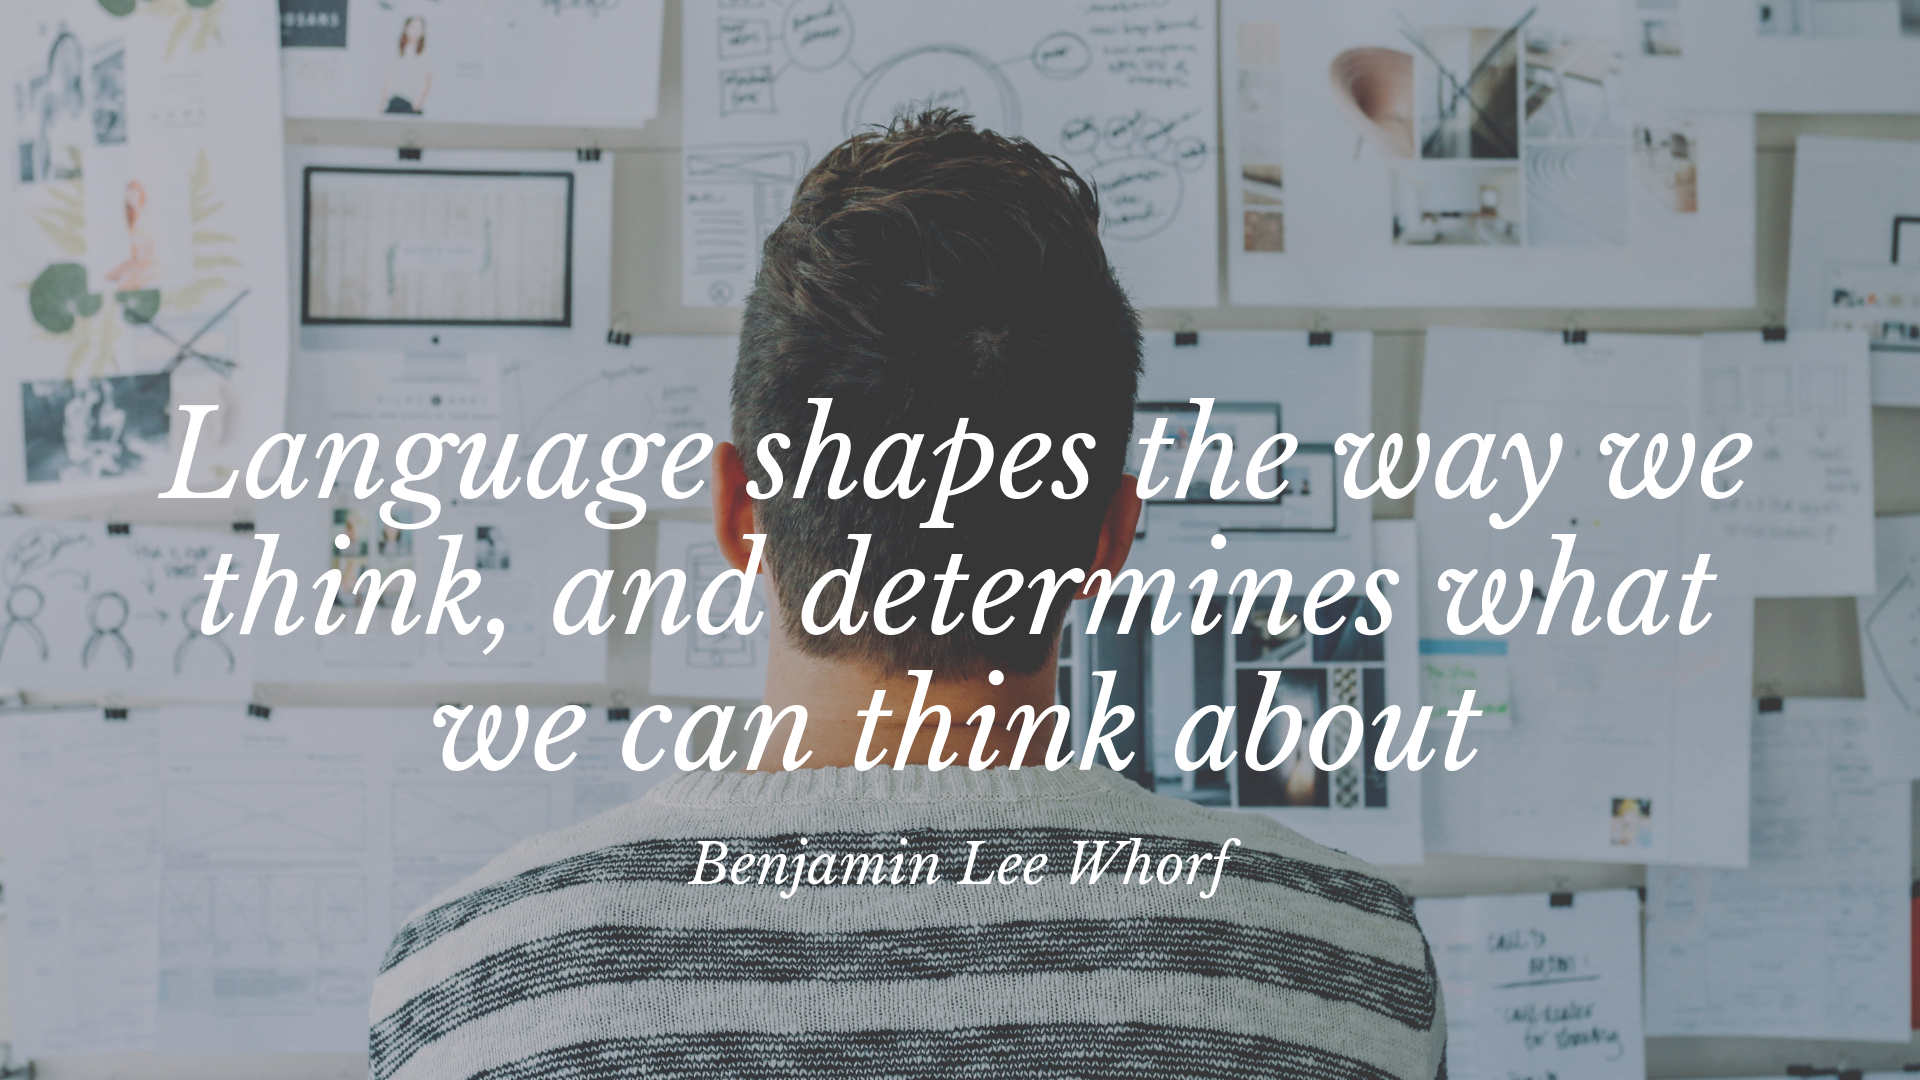 Language shapes the way we think, and determines what we can think about. –Benjamin Lee Whorf